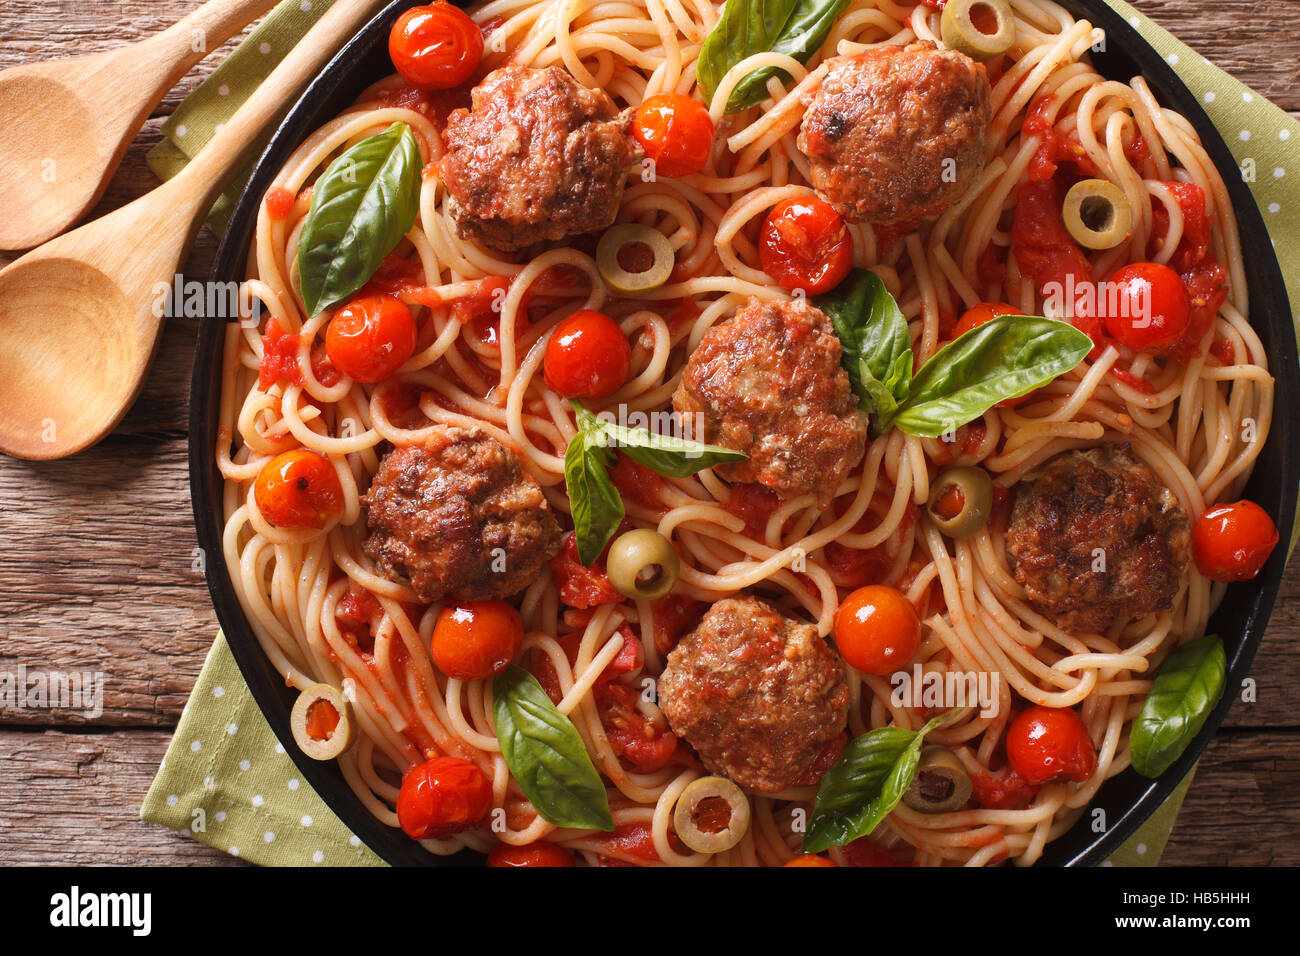 Italian food: spaghetti with meatballs, olives, basil and tomato sauce closeup on a plate. Horizontal view from - Stock Image